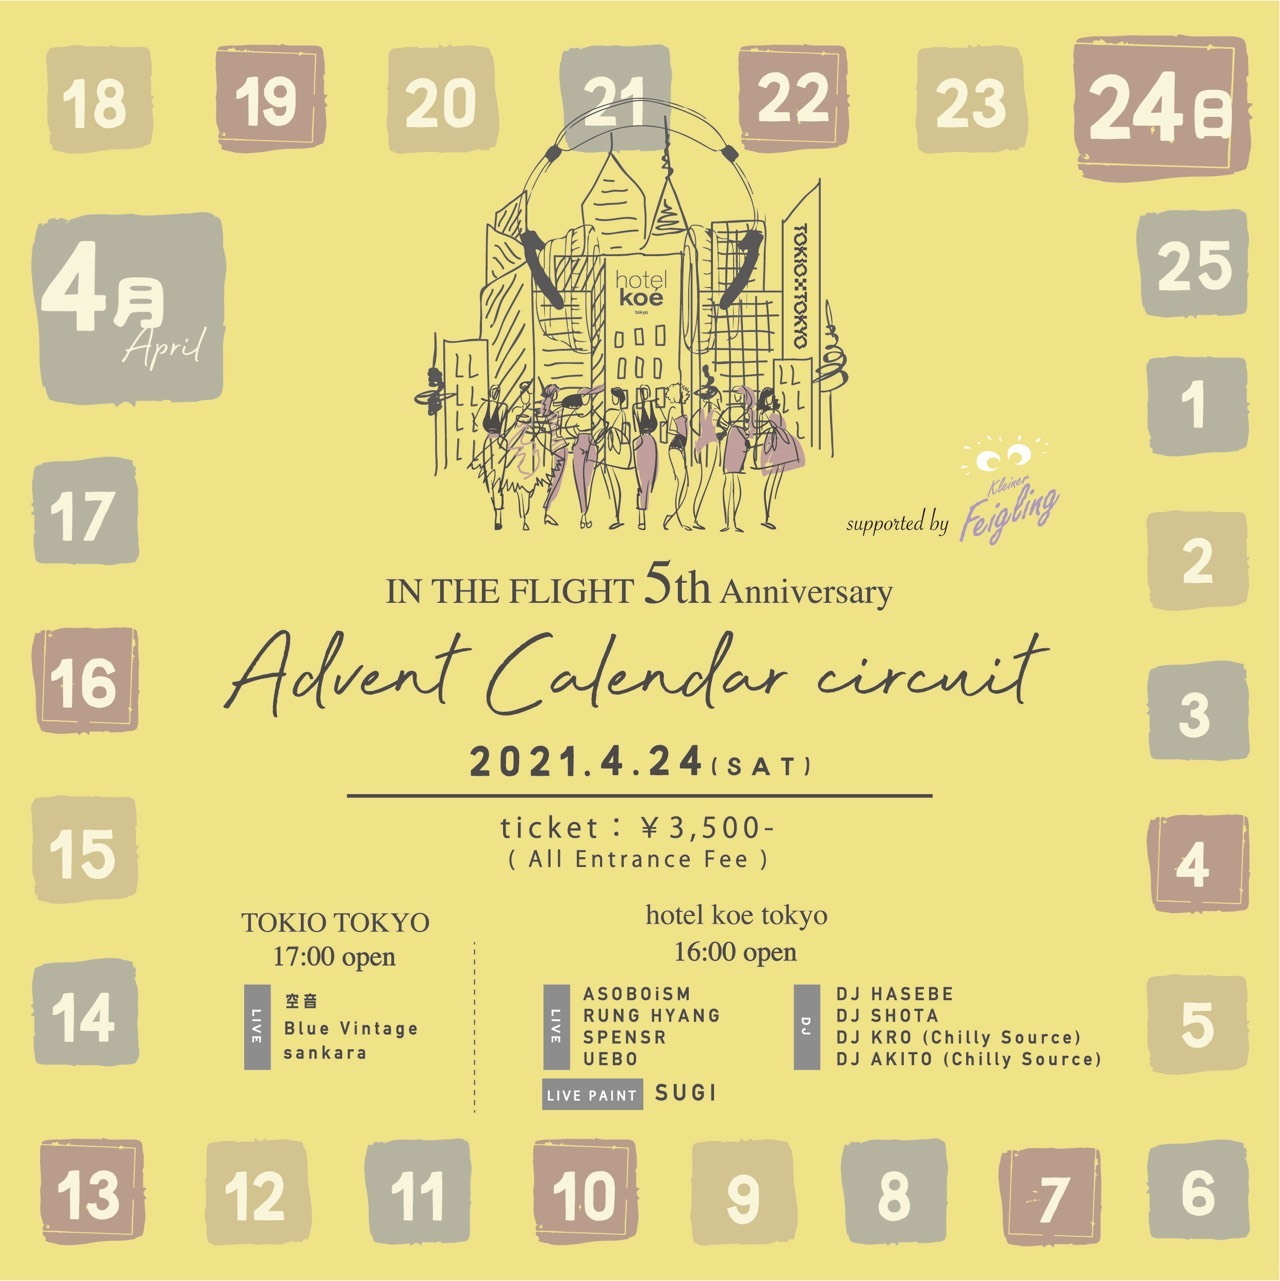 『IN THE FLIGHT 5th Anniversary Advent Calendar circuit』